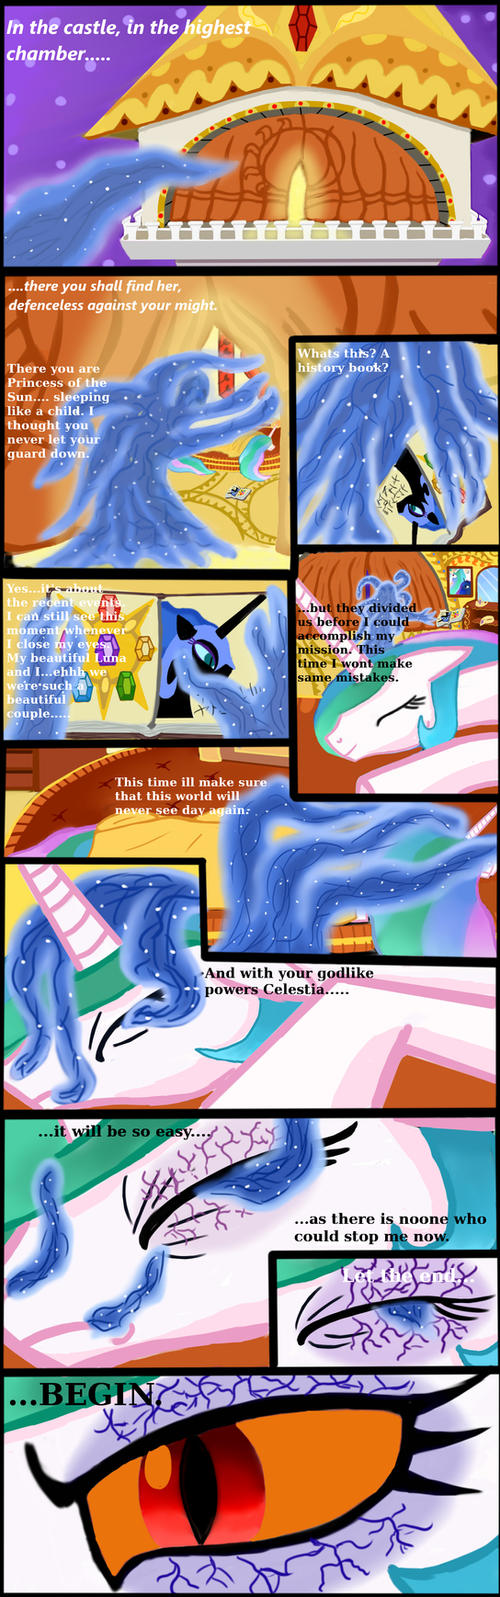 MLP: FIM Rising Darkness page 2 by Bonaxor